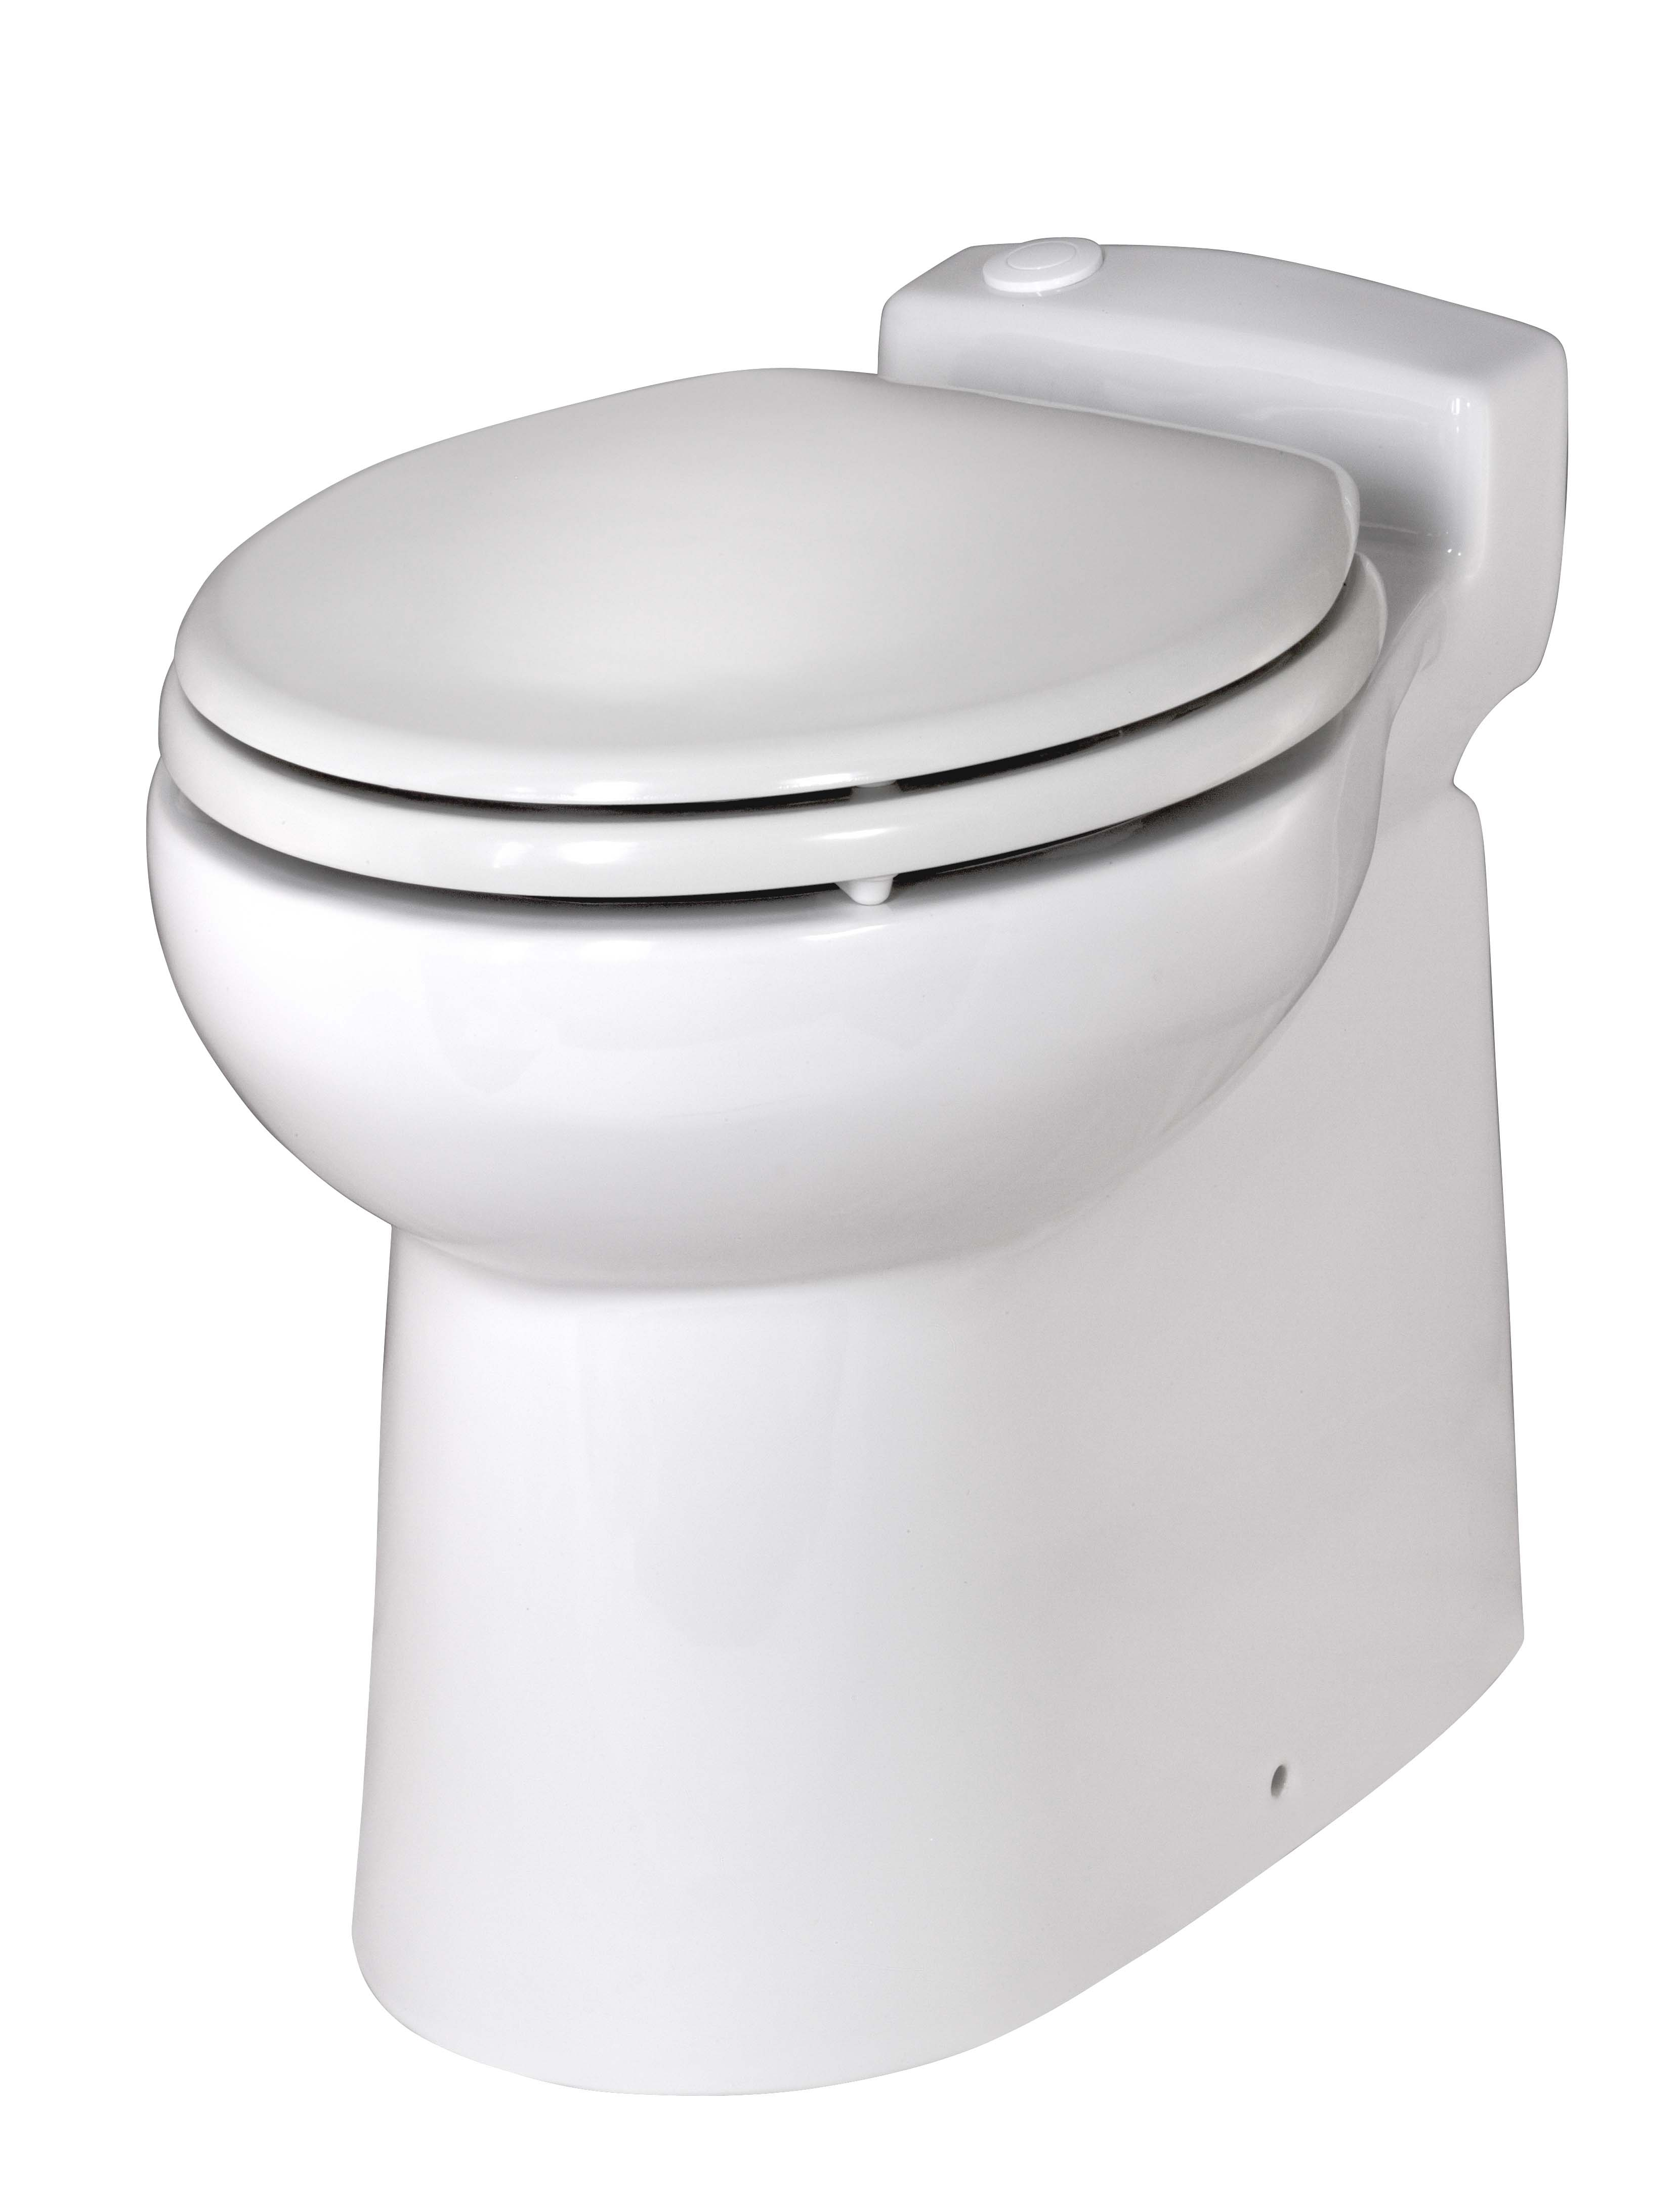 your you depth decide and can reviews guide of when bathroom the updating o saniflo is are one to brands purchase considering upgrading need best in toilet thing that type